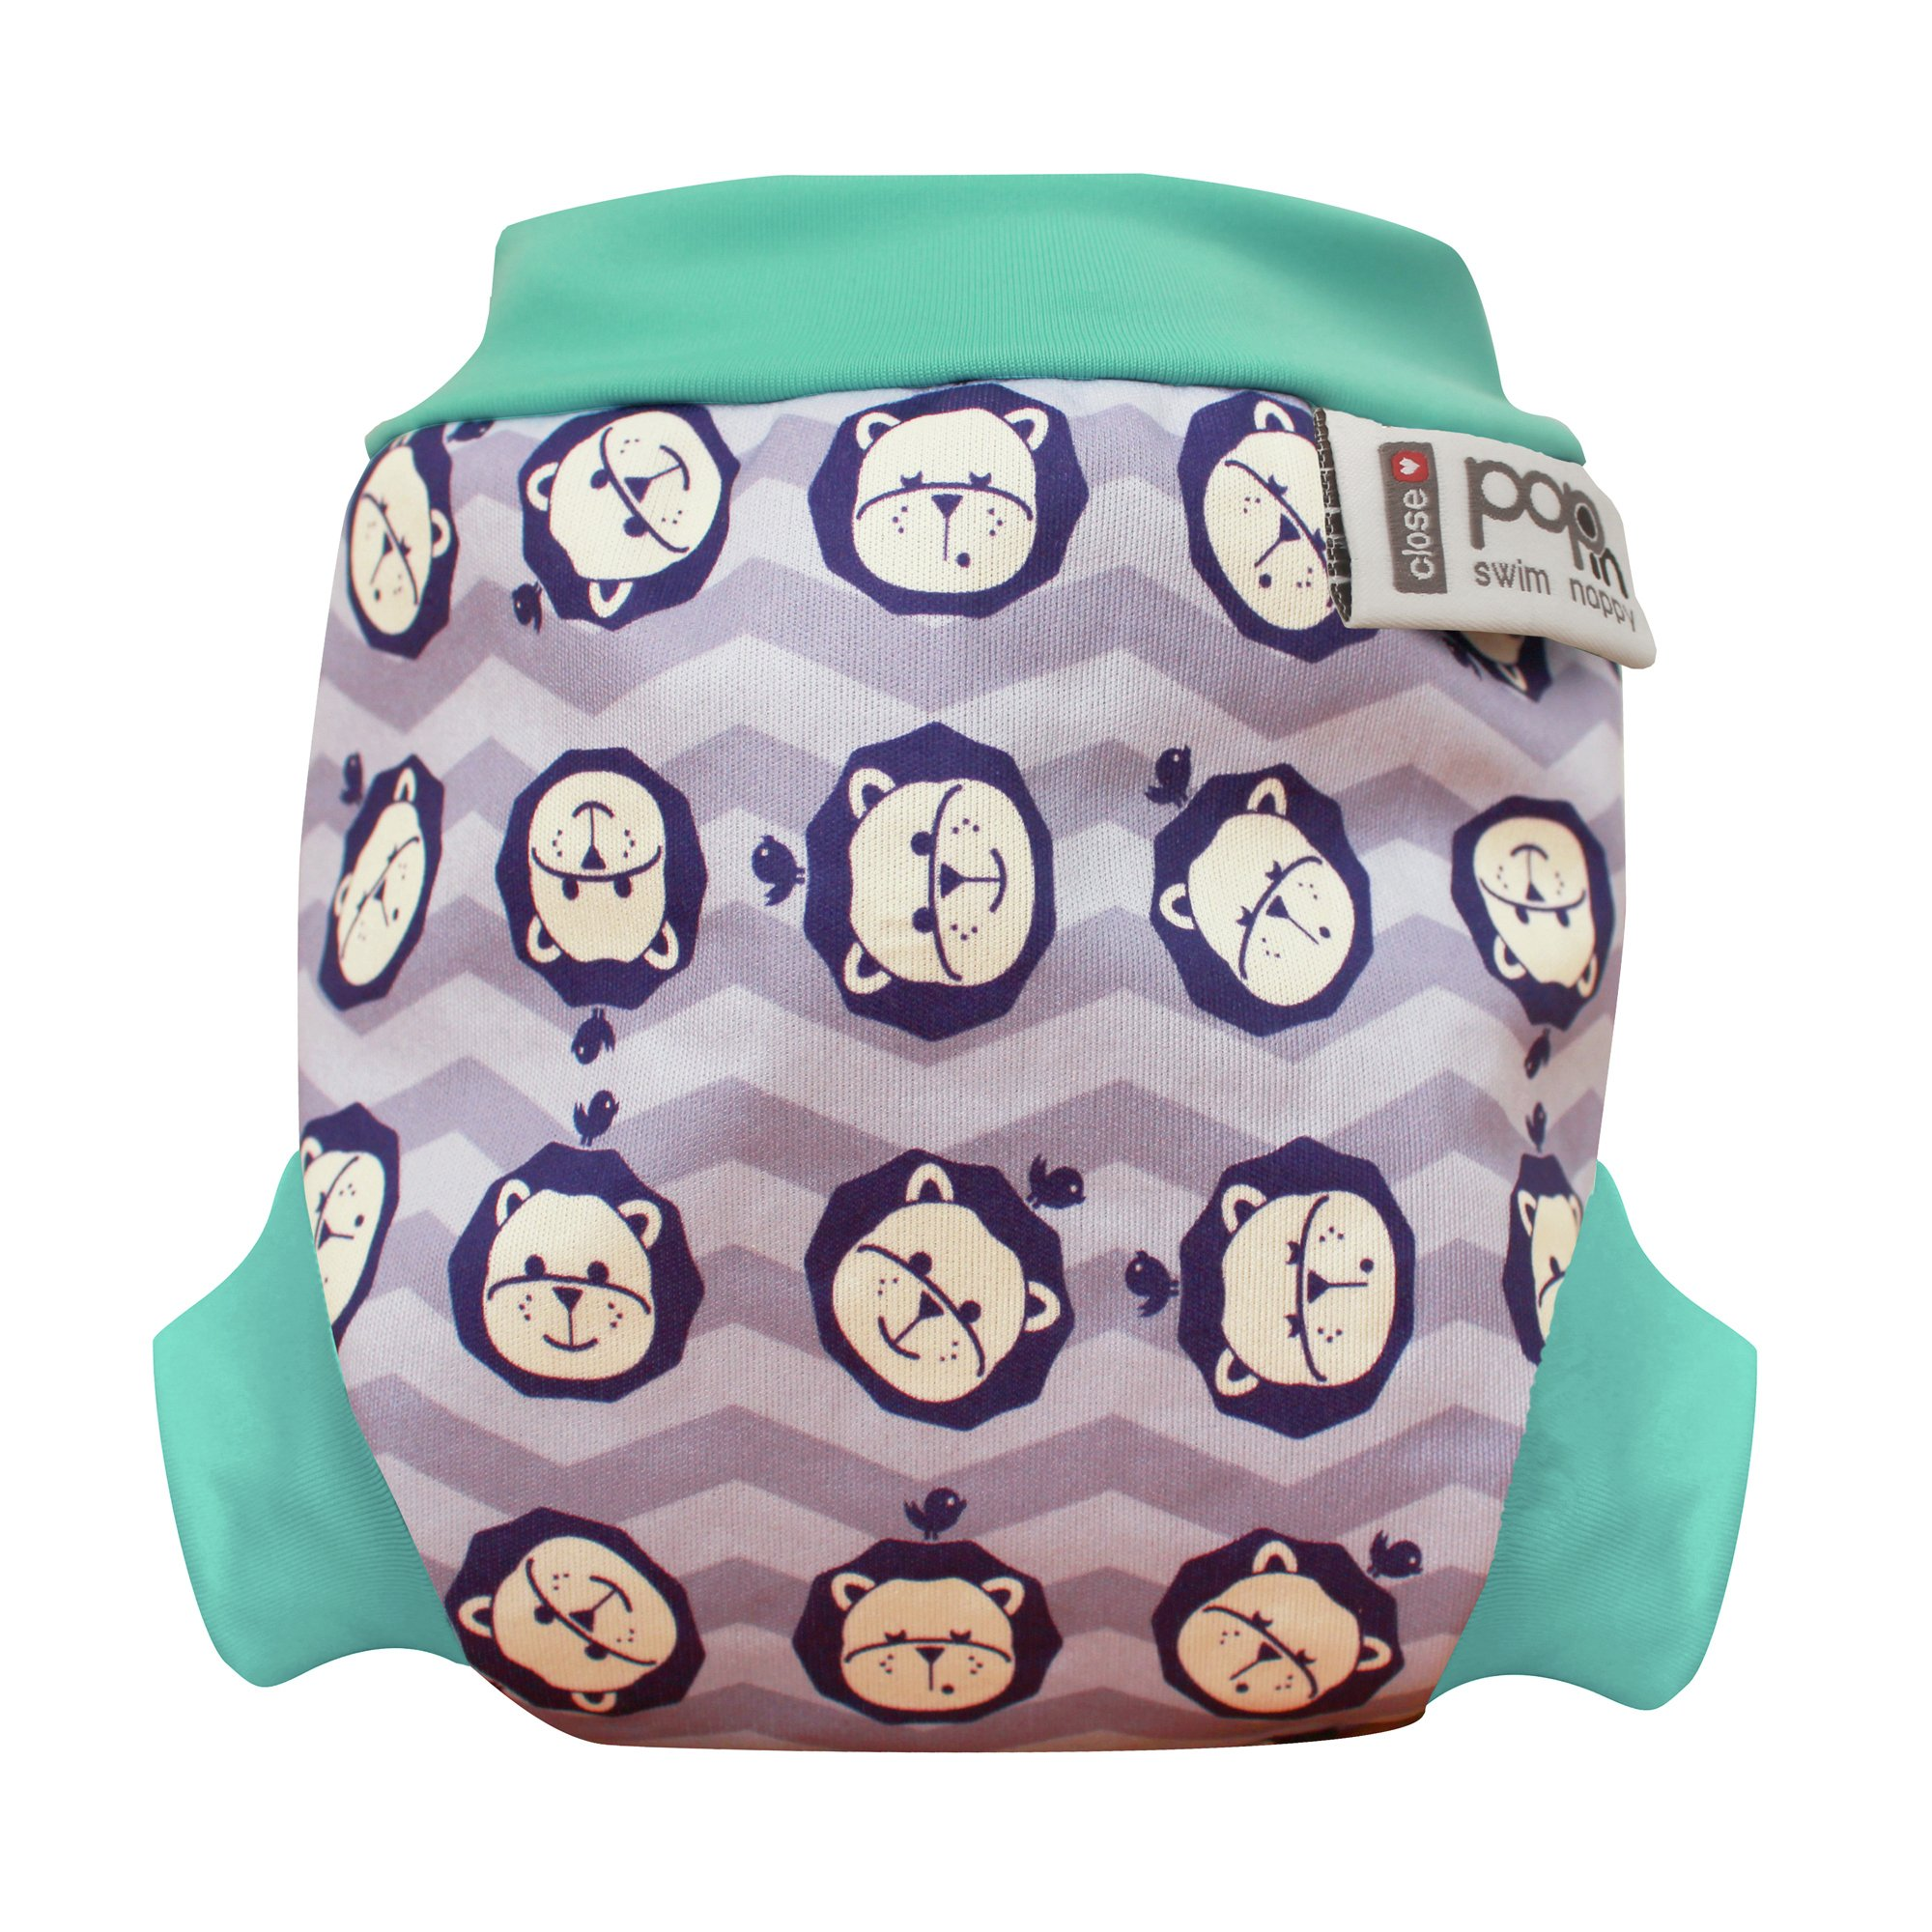 Image of Pop In - Lion Swim Nappy - Medium